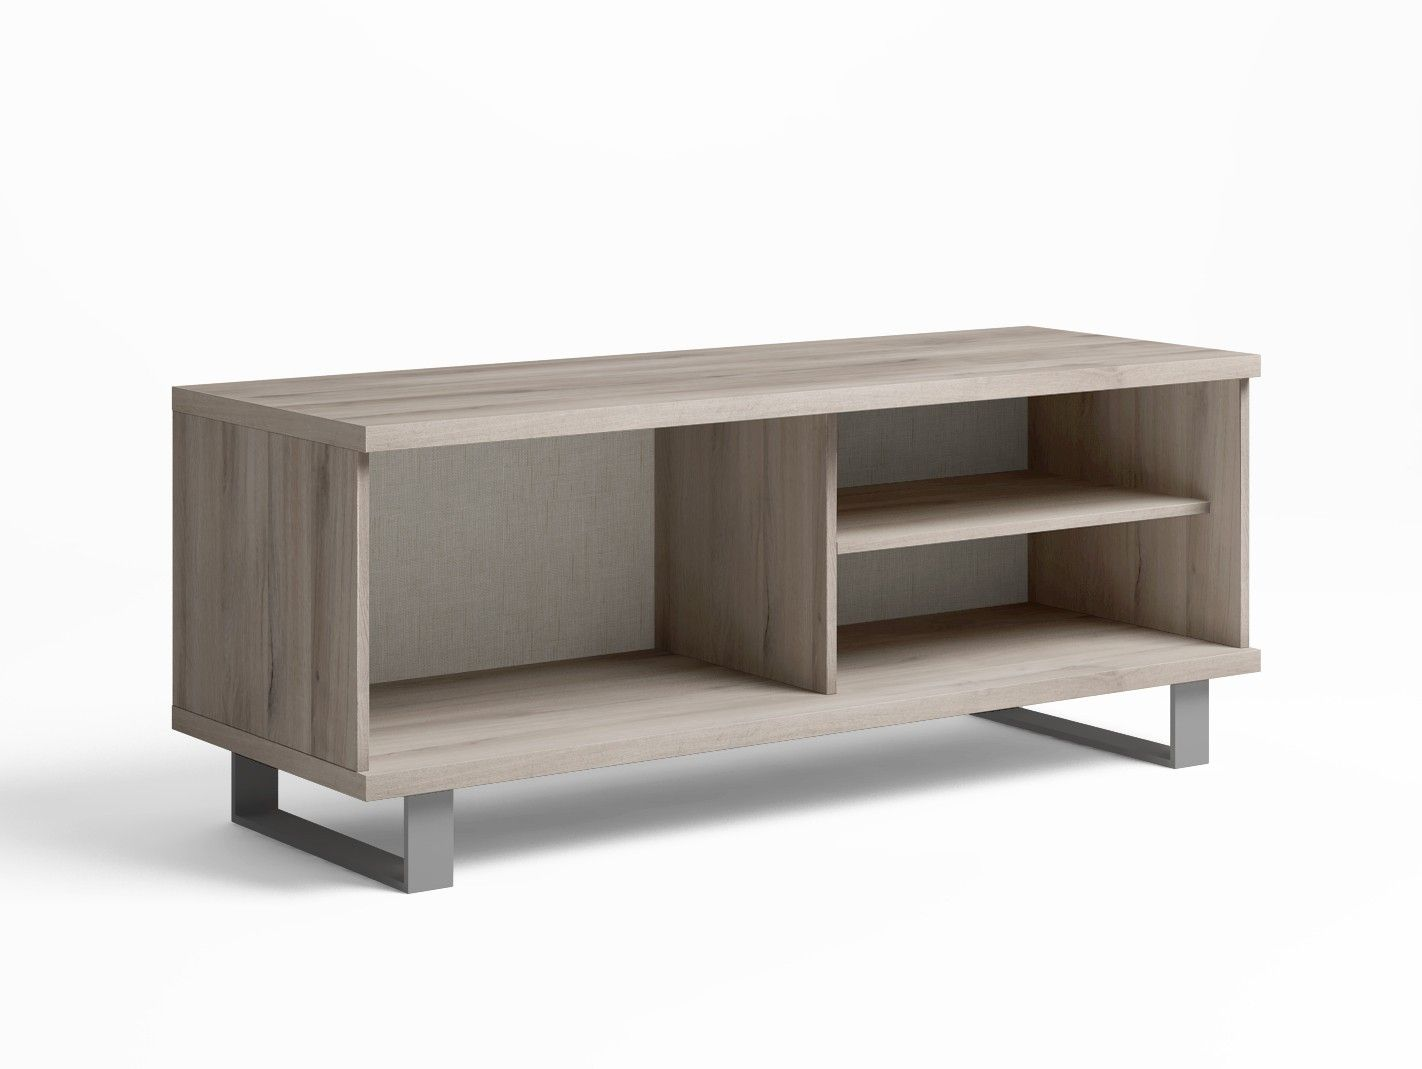 Muebles salon yecla 20170906121627 for Mueble modular salon